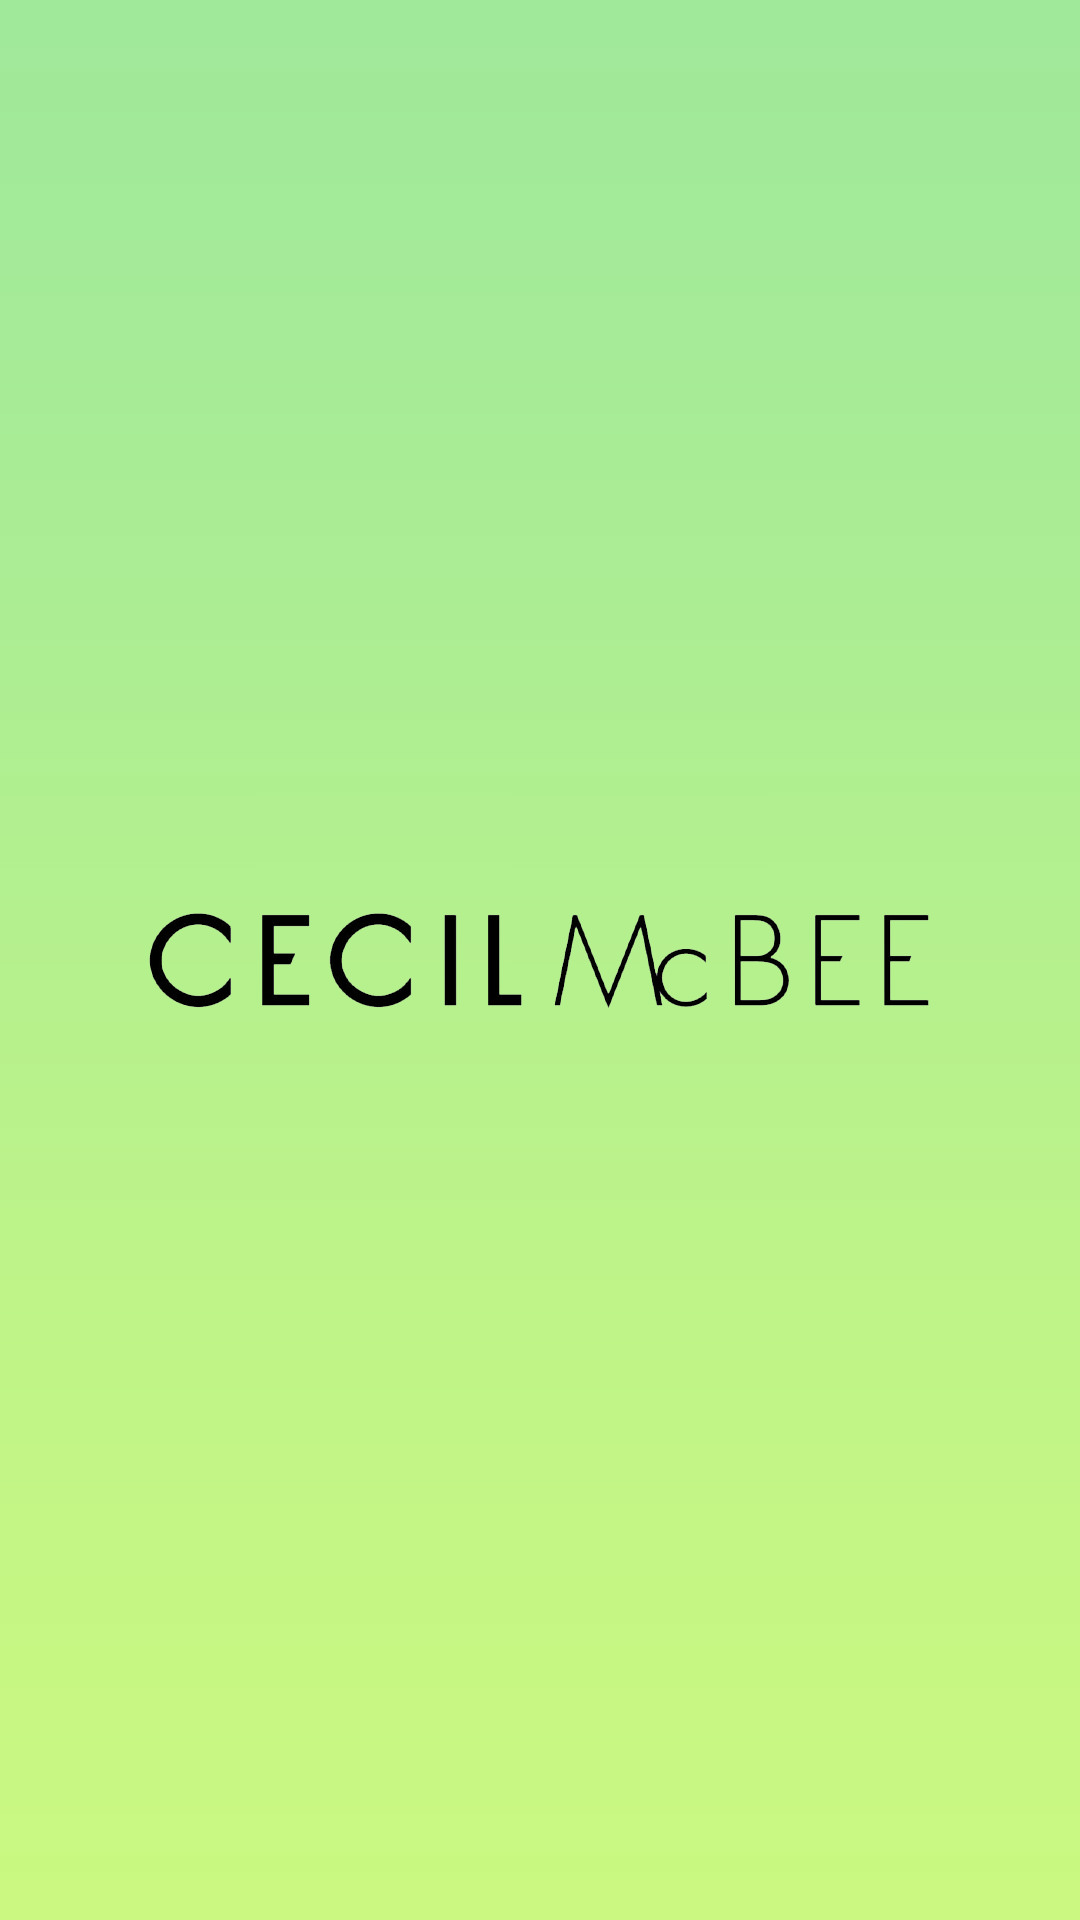 cecil00011 - セシルマクビー[CECIL McBEE]の高画質スマホ壁紙23枚 [iPhone&Androidに対応]